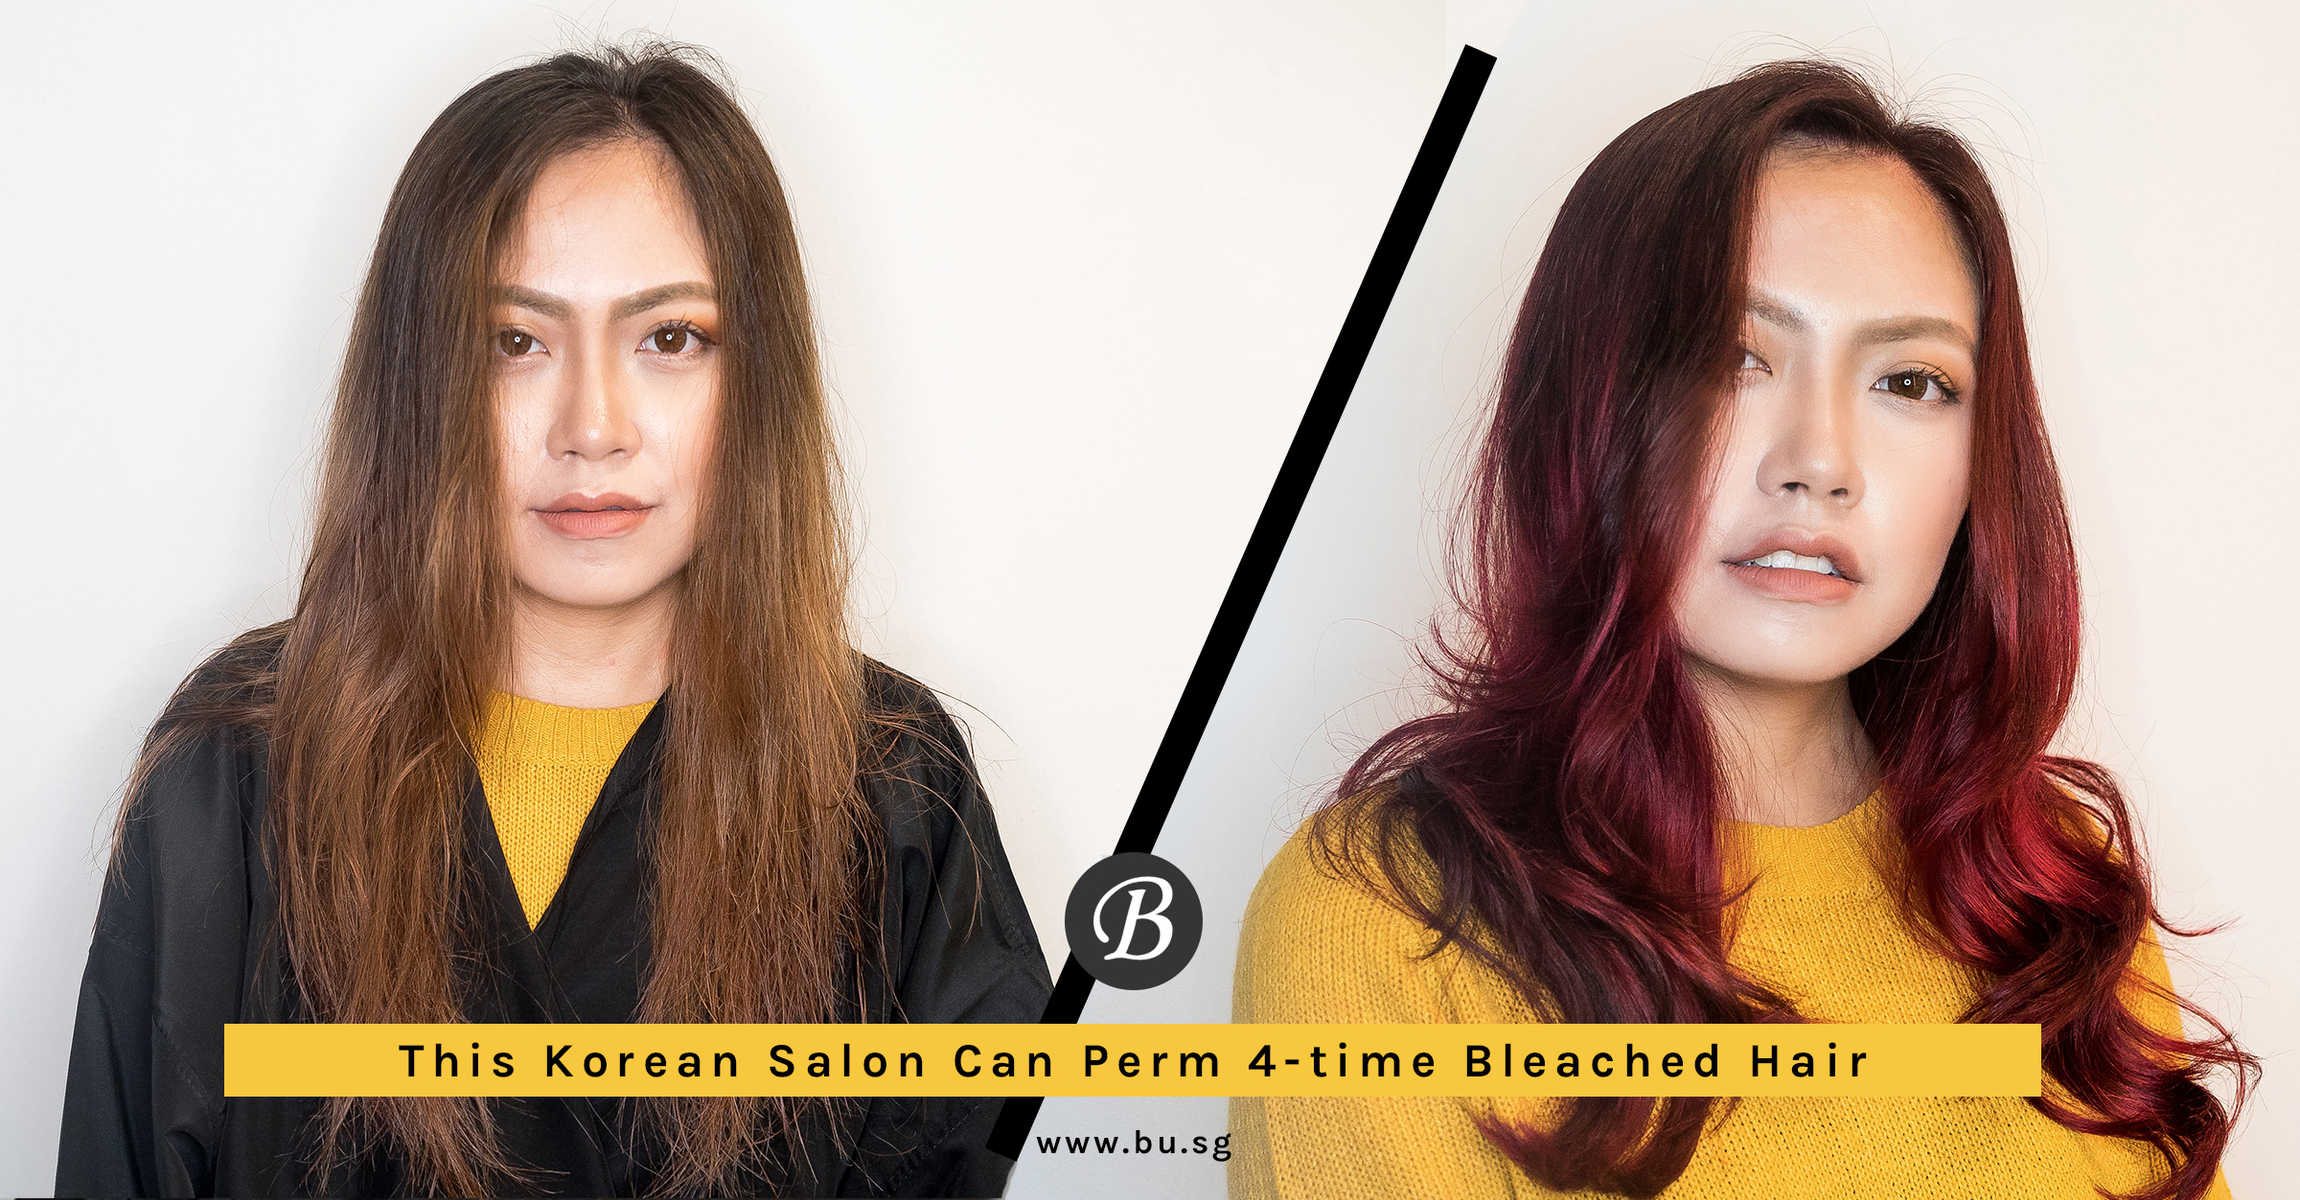 This Revolutionary New Perm Can Perm Hair That Has Been Bleached 4 Times